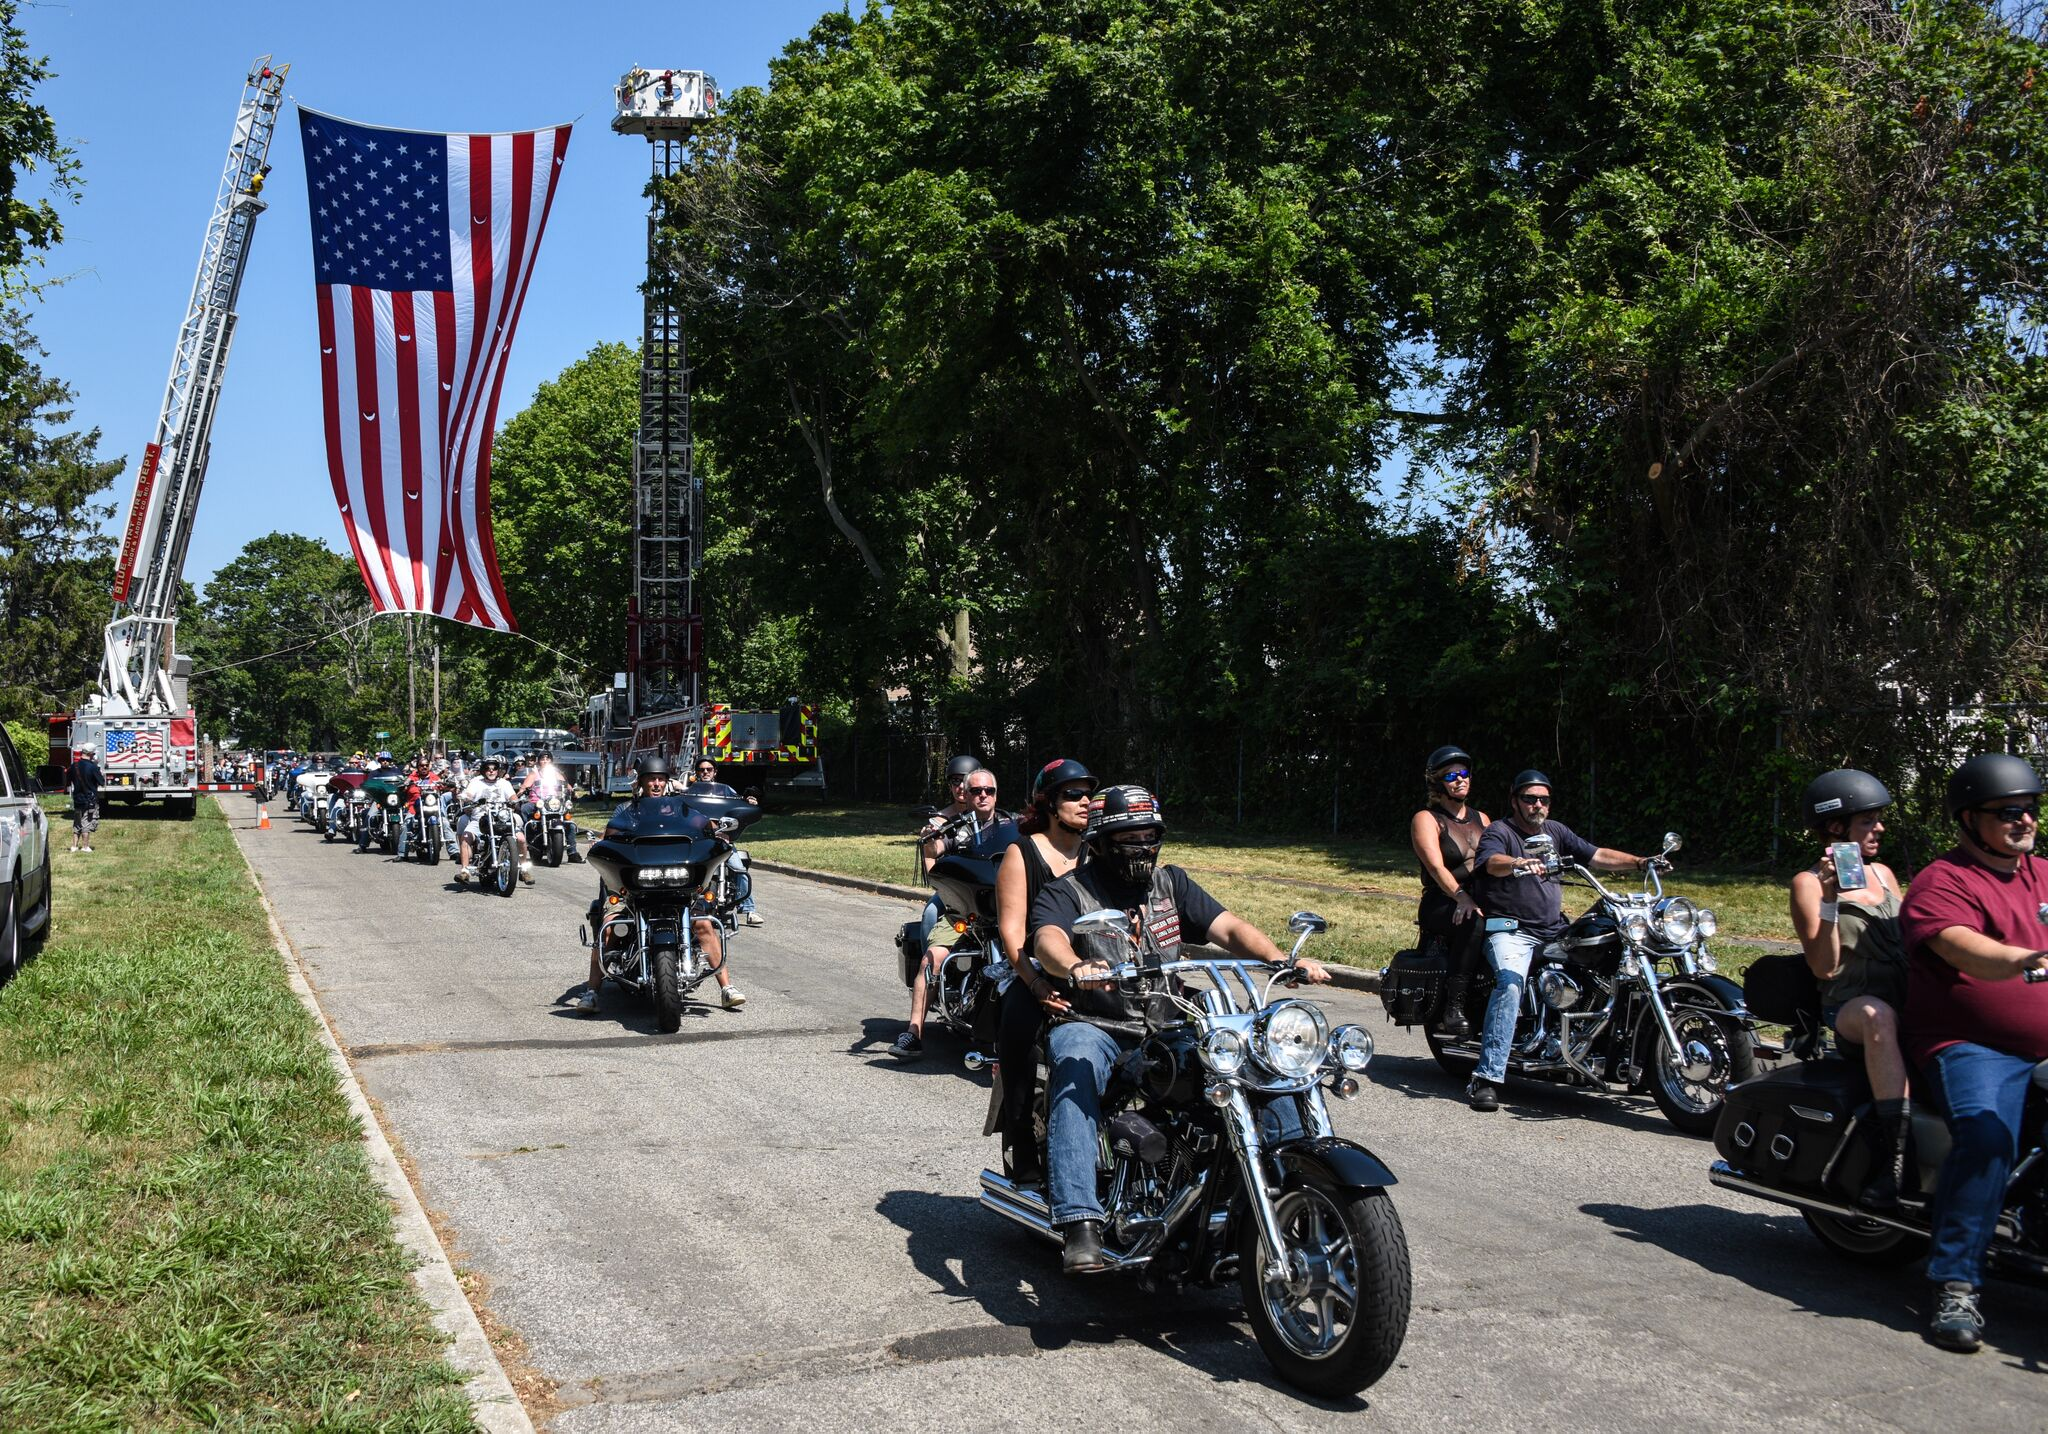 Riders hit the road for the 10th Annual Sticky Finger Motorcycle Run. Photo credit: Mac Titmus